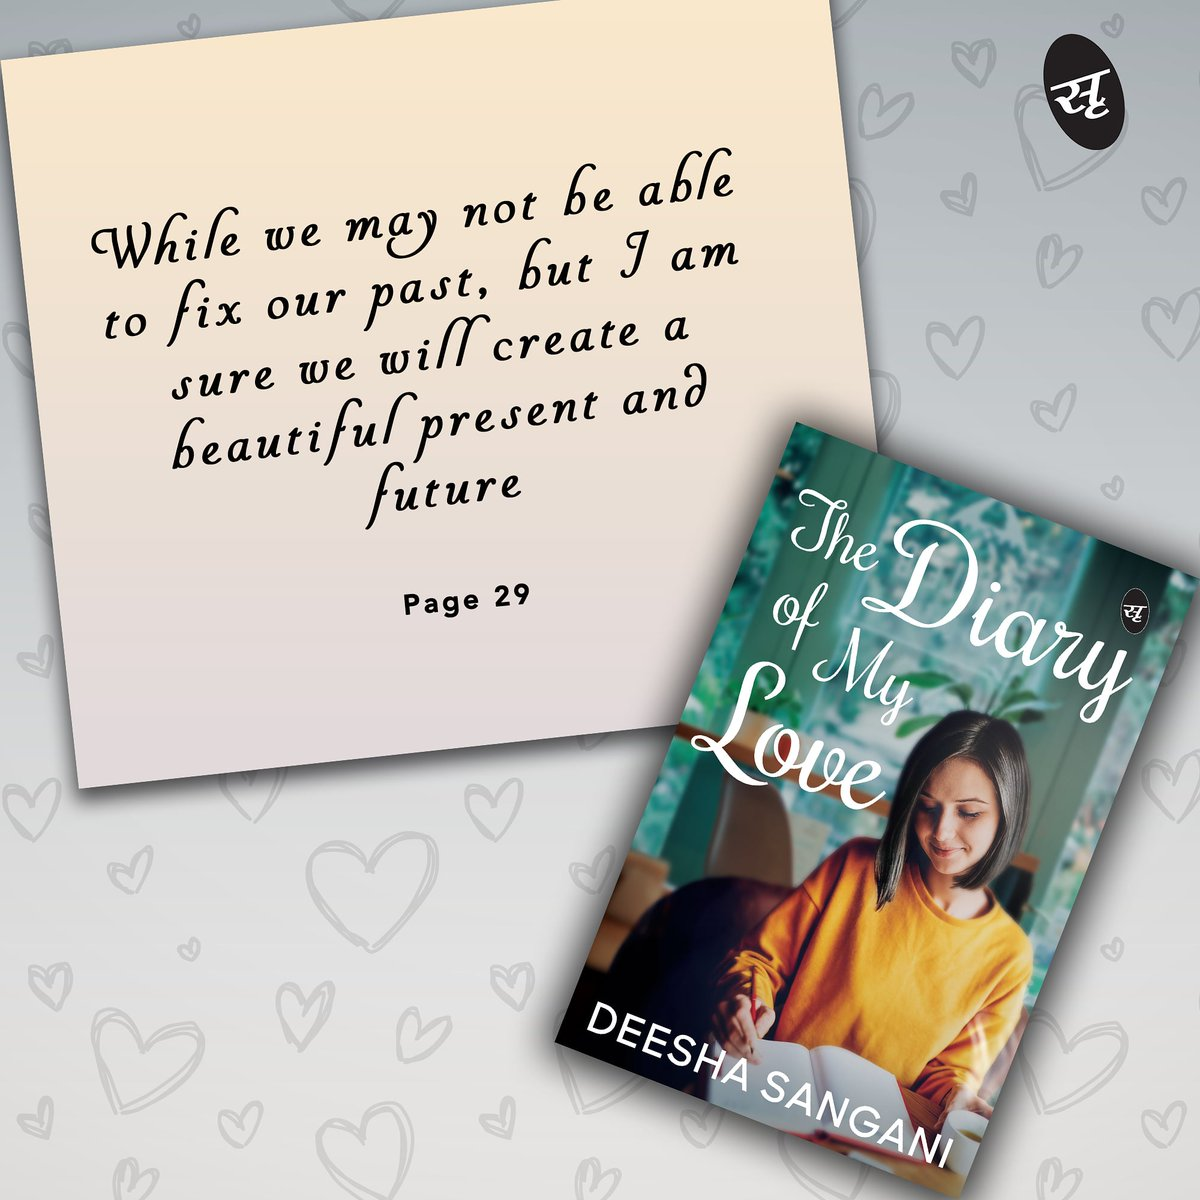 While we may not be able to fix our past, but I am sure we will create a beautiful present and future.  Get your copy of the most heart-touching Love story of the year by Deesha Sangani from wherever books are sold. . . #books #srishtipublishers  #readers #romance @DeeshaSangani https://t.co/bputdsbk9C